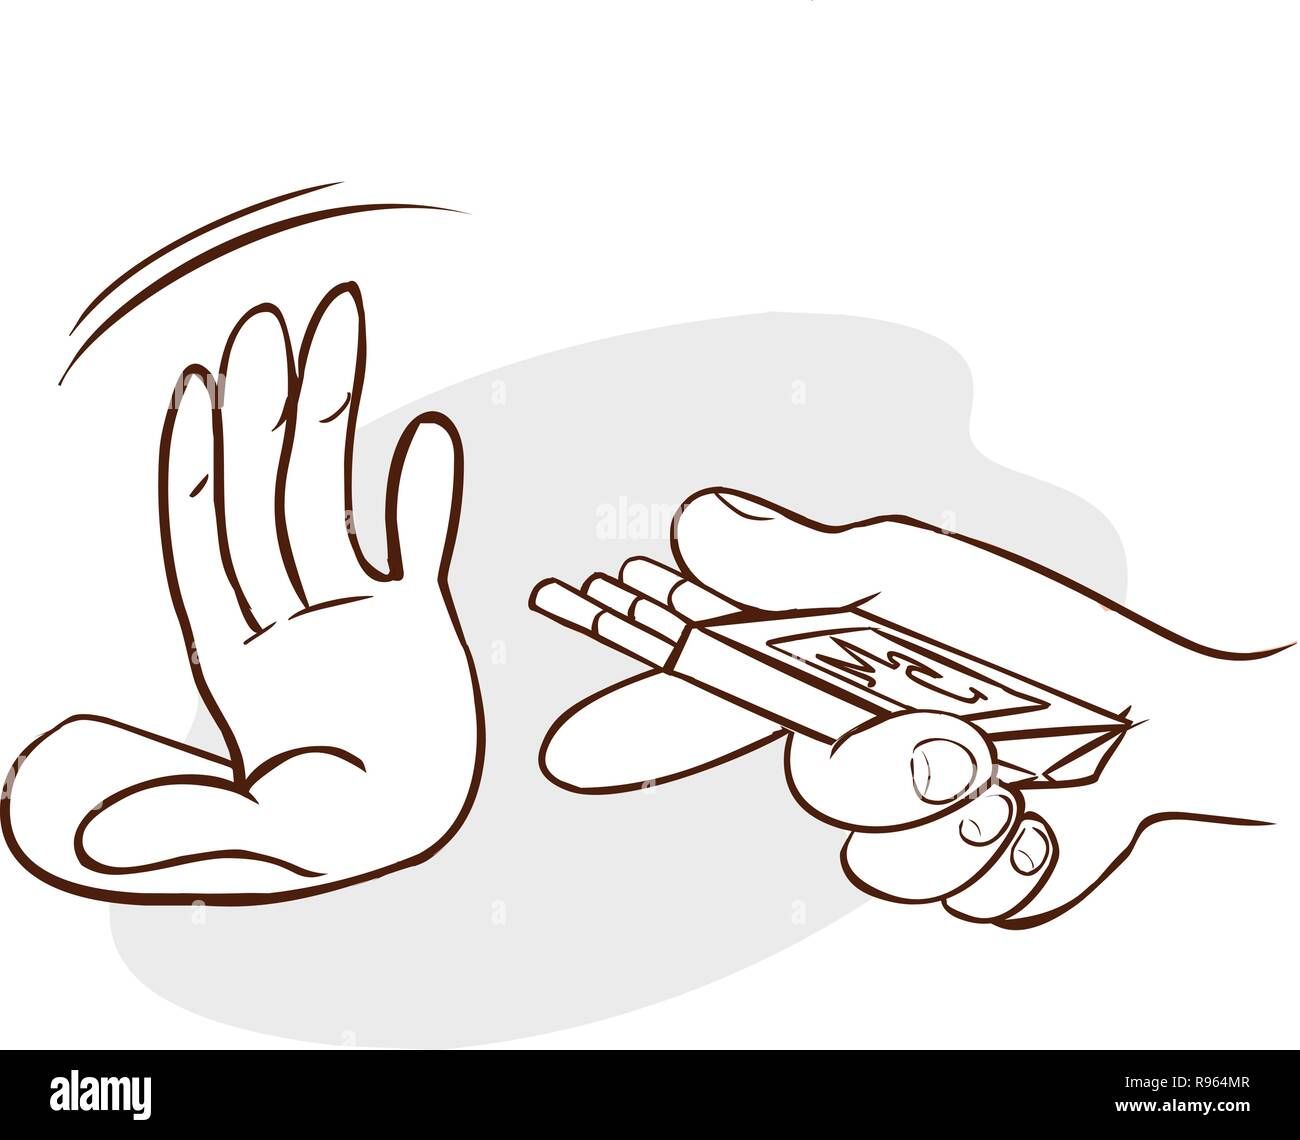 Hand refusing a cigarette offer, isolated on grey background - Stock Vector